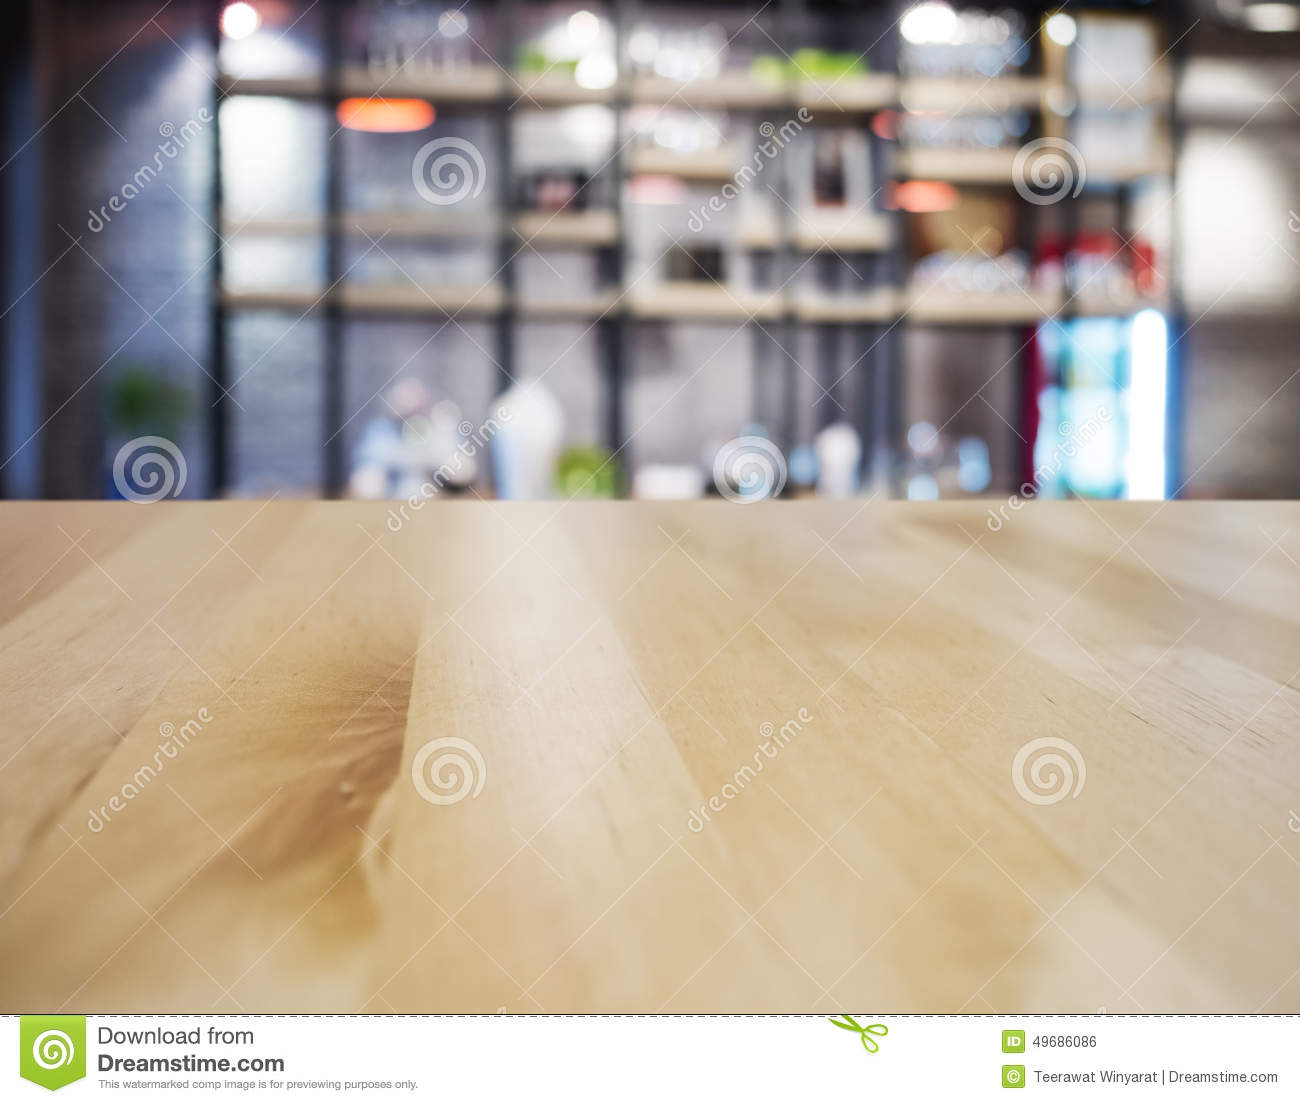 Table Top Counter Bar Restaurant Interior Blurred